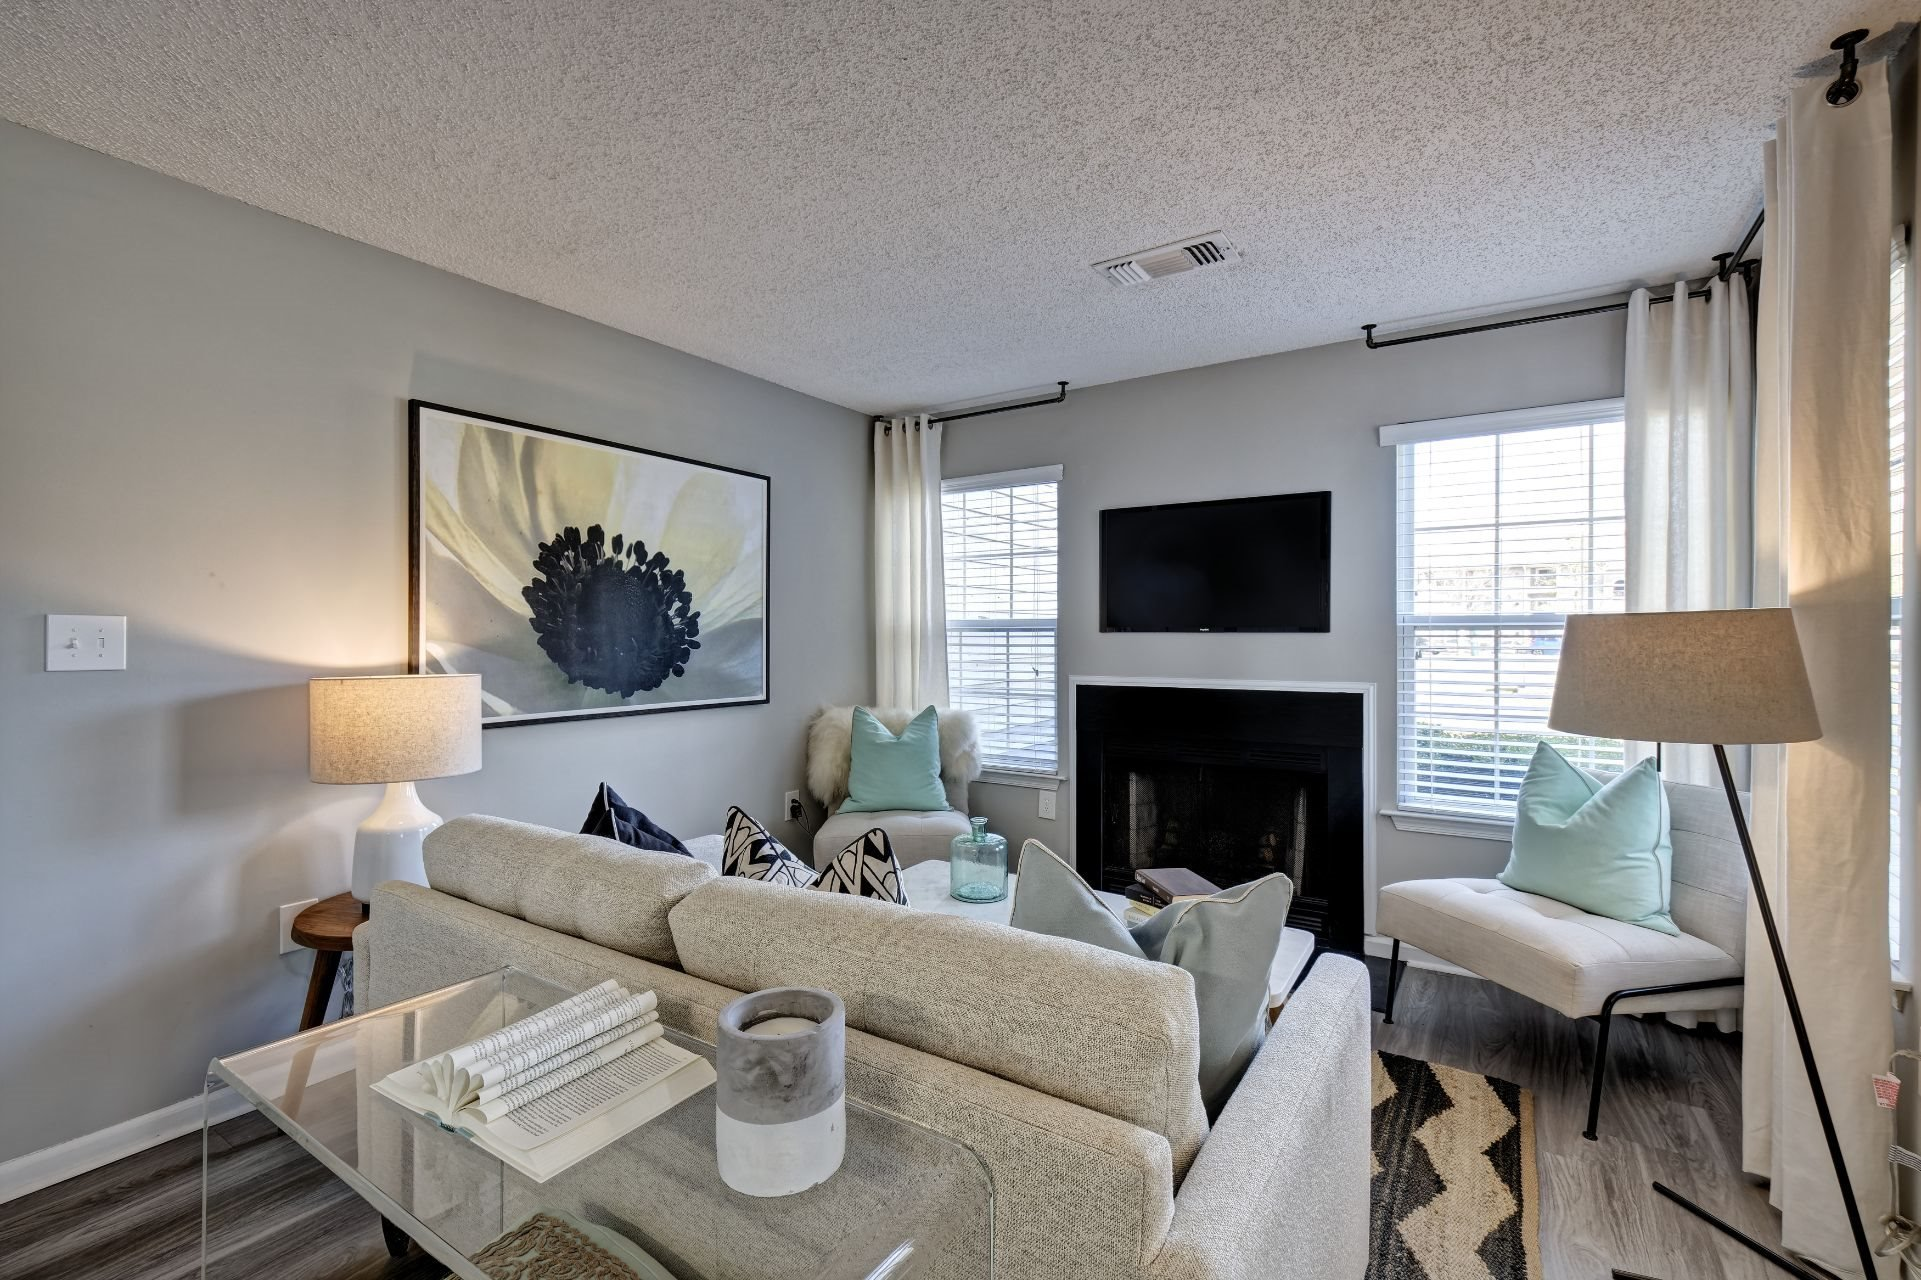 Newly Renovated 1, 2 and 3 Bedroom Luxury Apartments in Lawrenceville NJ with Open Concept Living Room, Fireplace, Picture Windows and  Private Patio or Balcony -1000 Steward Crossing Way Lawrenceville NJ 08646